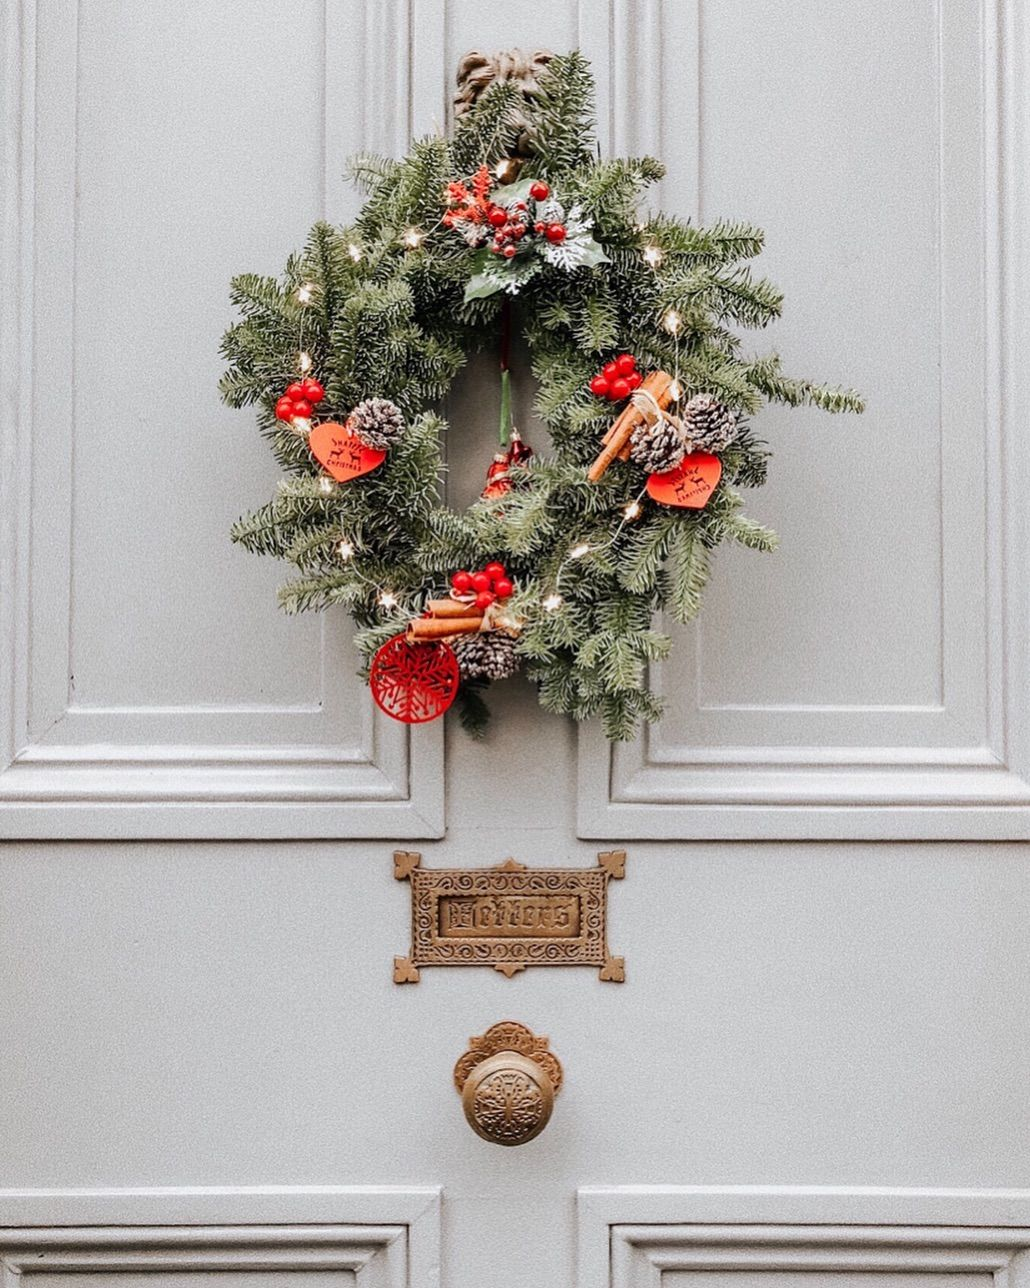 Christmas Wreath On A Pale Grey Door Festive Home Decorations